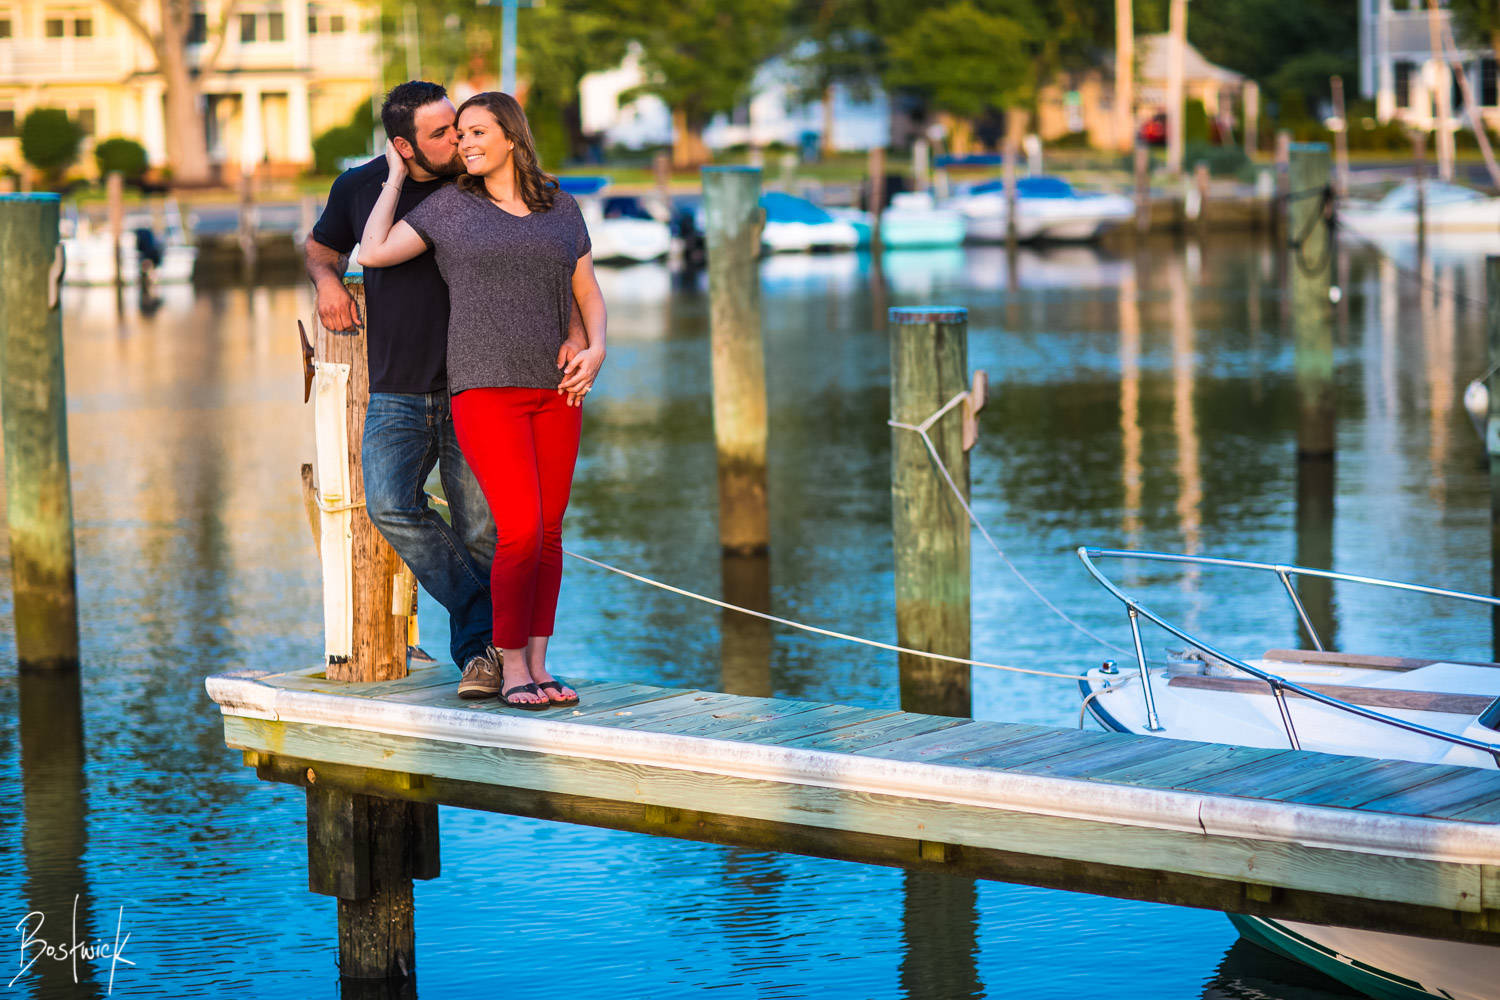 St-micheals-md-engagement-photos (15 of 19)